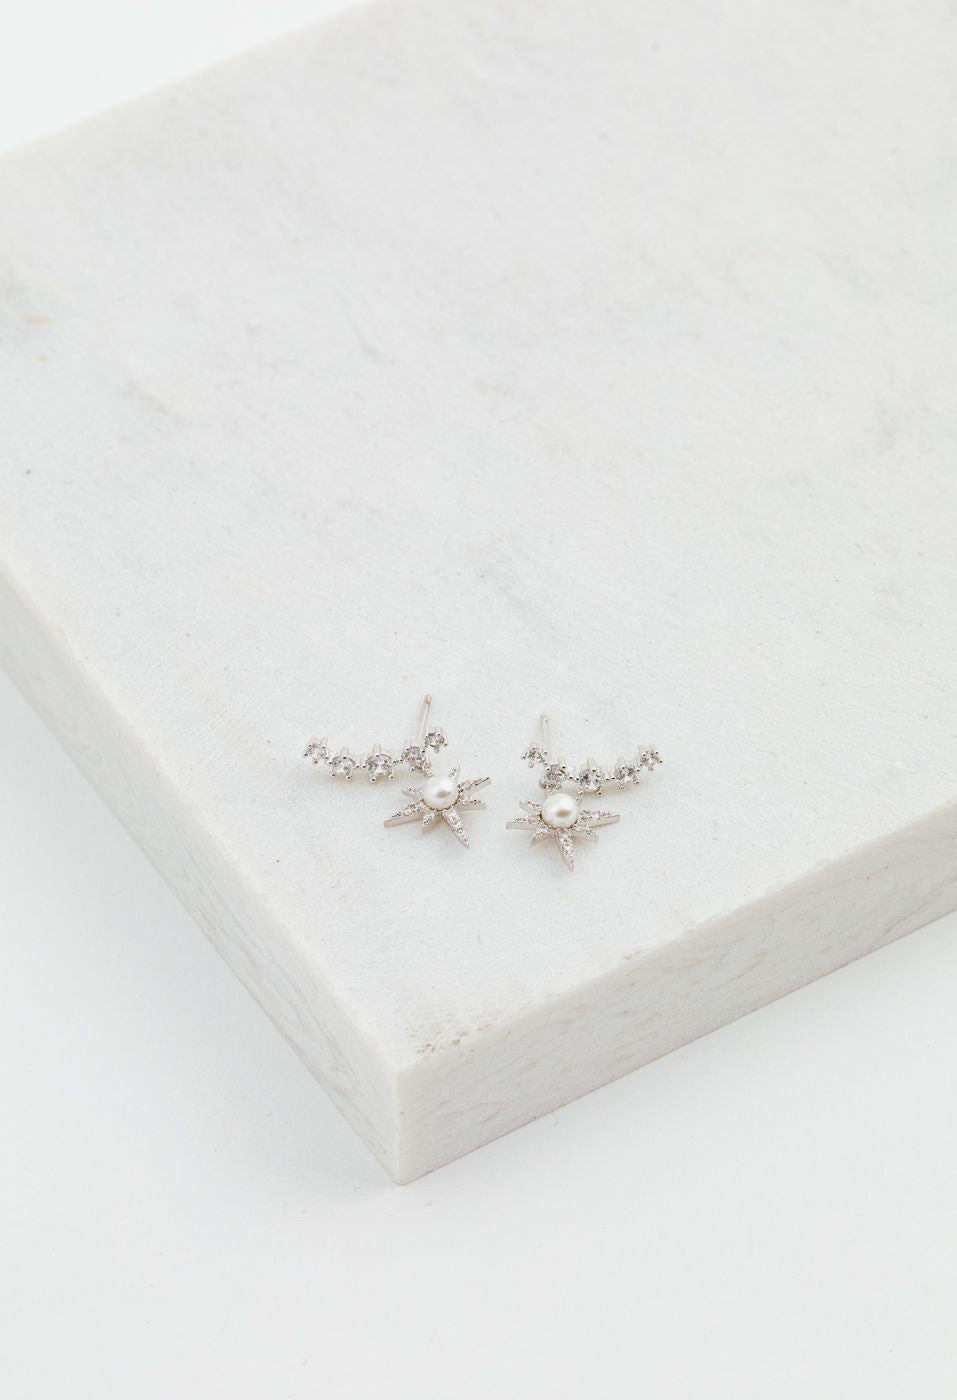 Alaia Climber Earrings - Silver